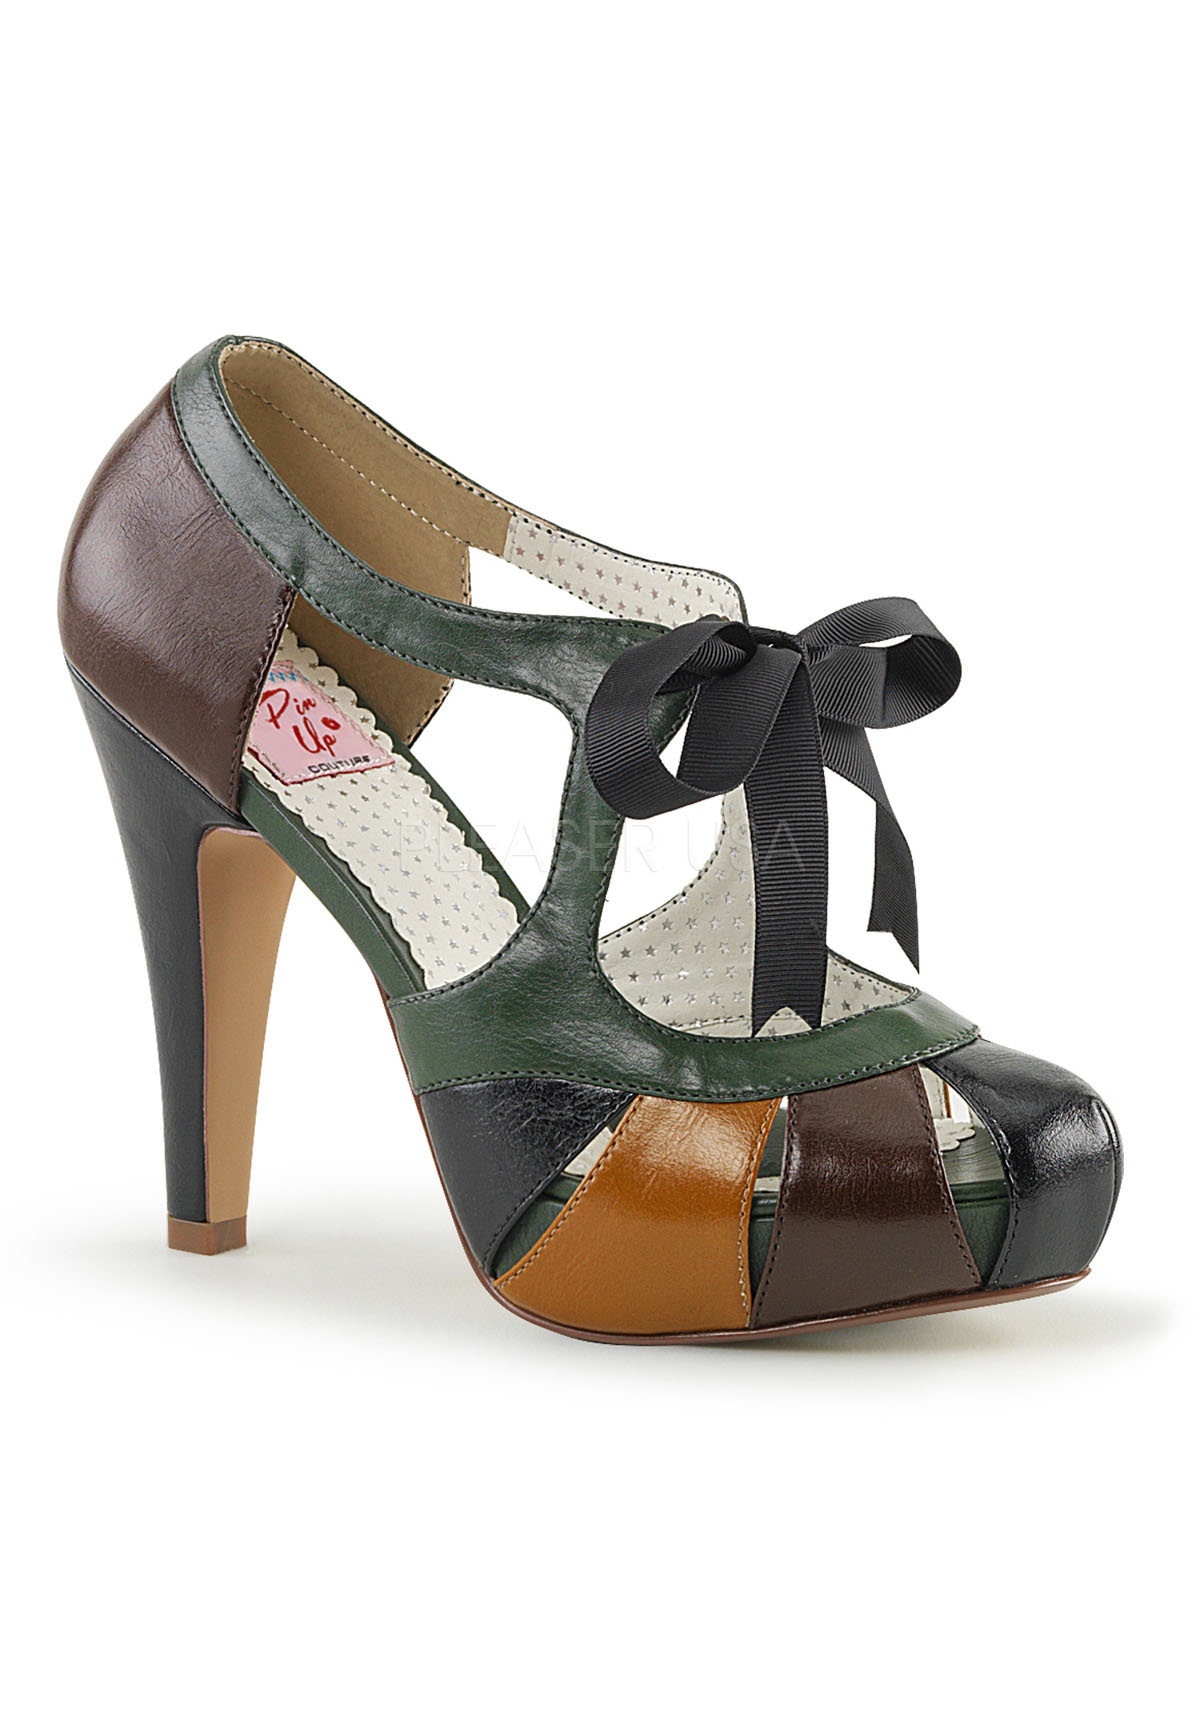 4 1/2 Inch Heel, 1 Inch Semi Hidden Platform Closed Toe/Heel Sandale